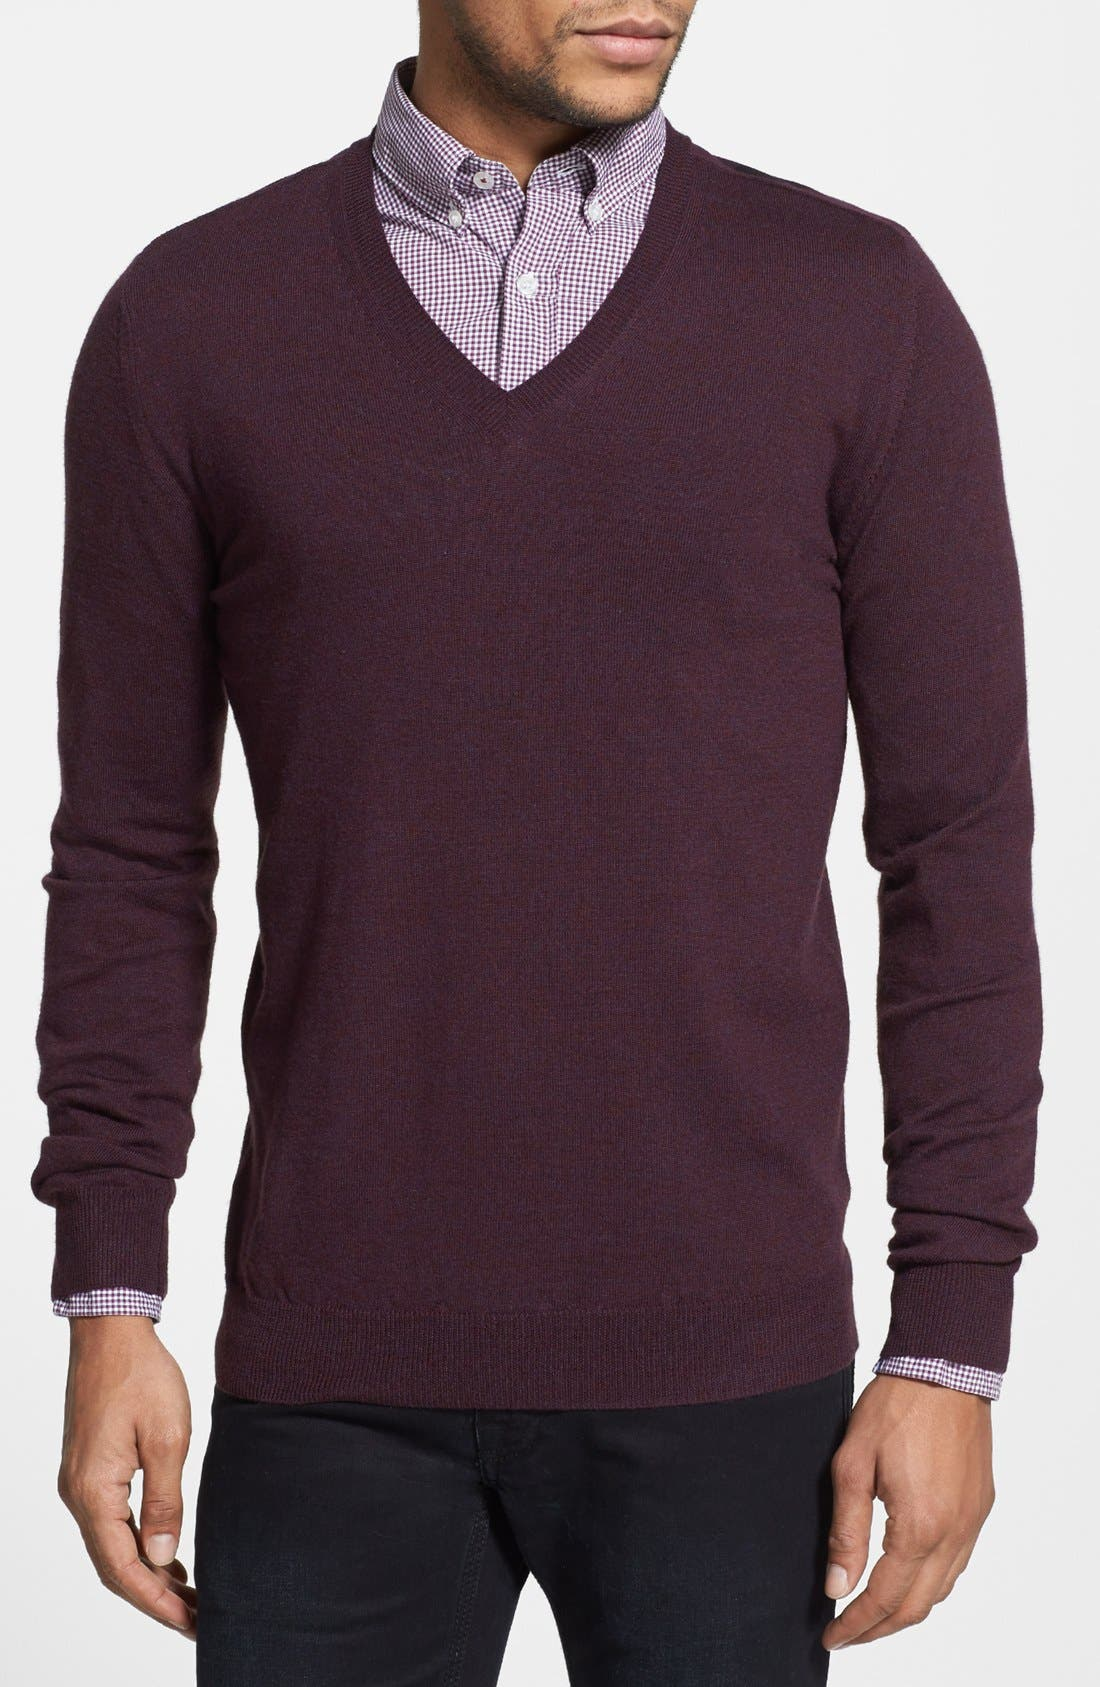 Alternate Image 1 Selected - Burberry Brit Trim Fit Check Shoulder V-Neck Merino Wool Sweater